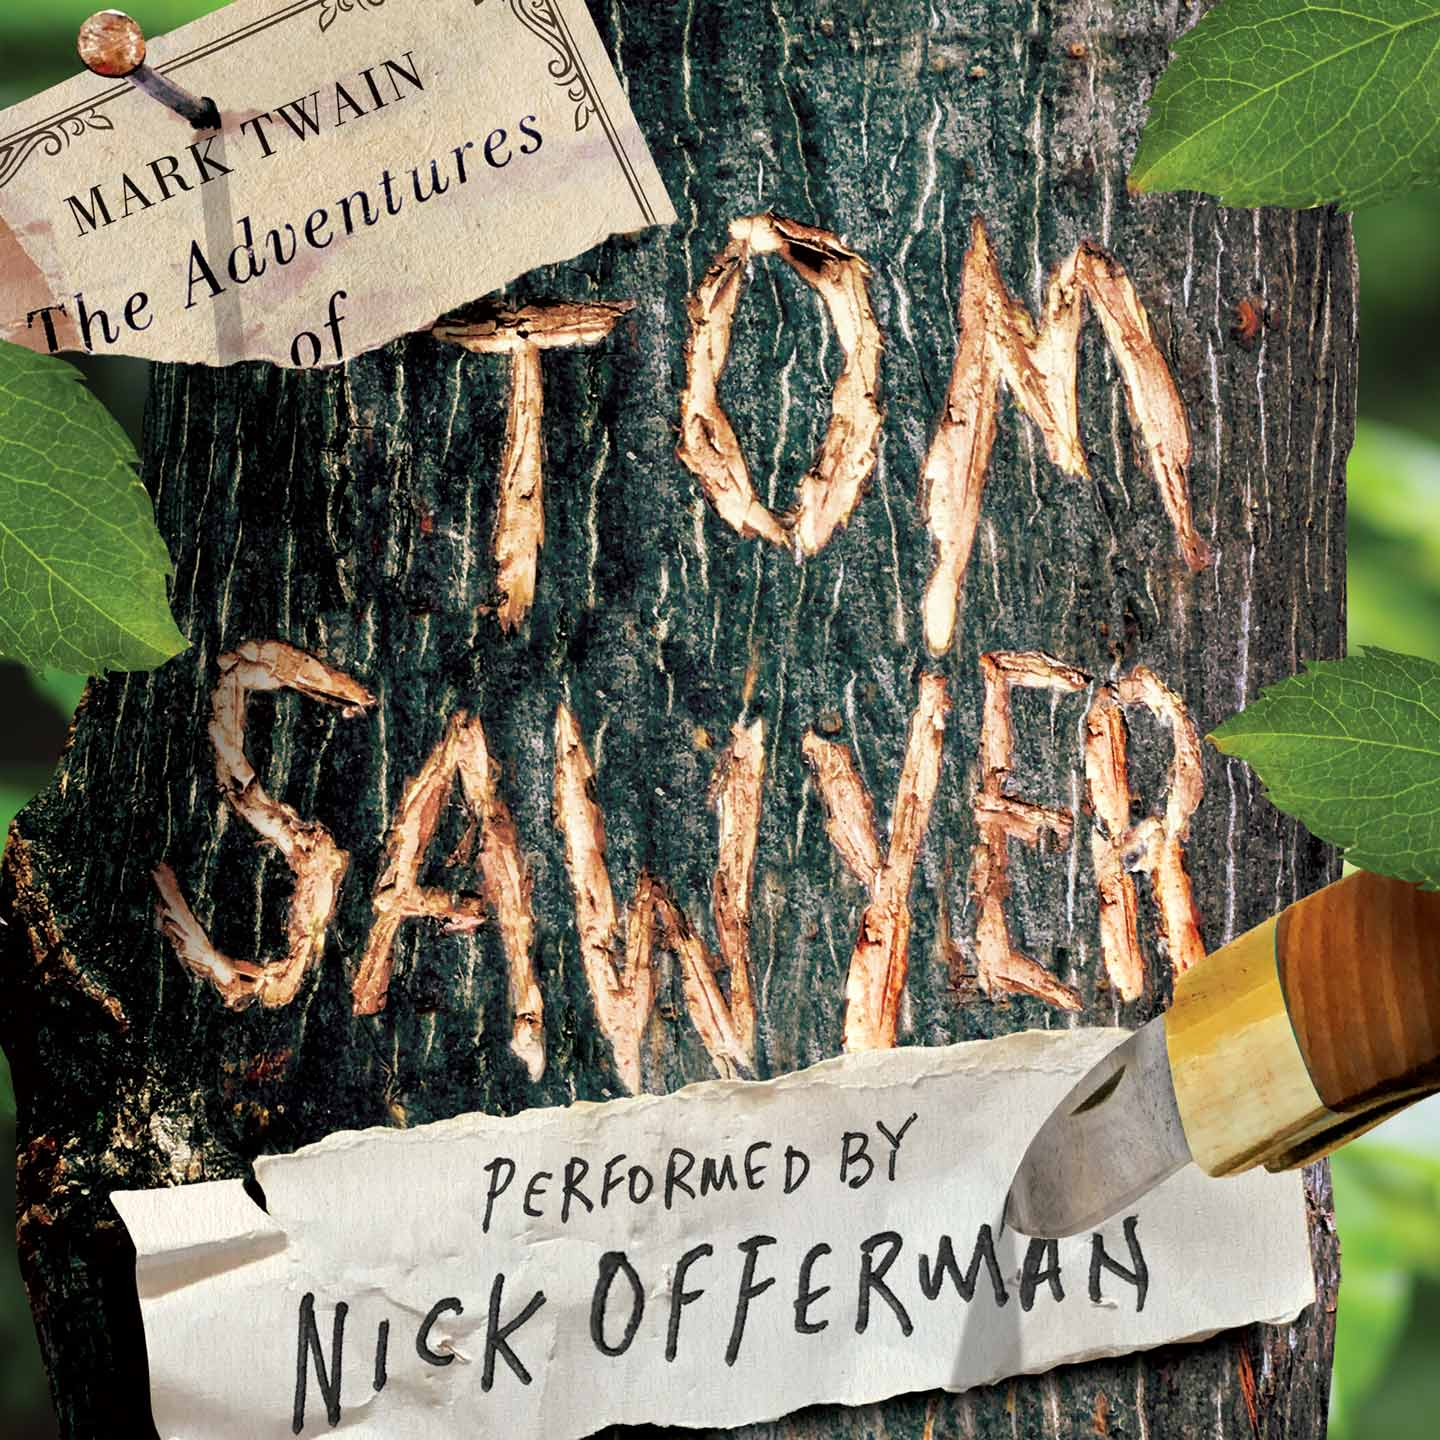 Free Kindle Title and $.99 Audible Book The Adventures of Tom Sawyer (Read By Nick Offerman) Both for  $0.99